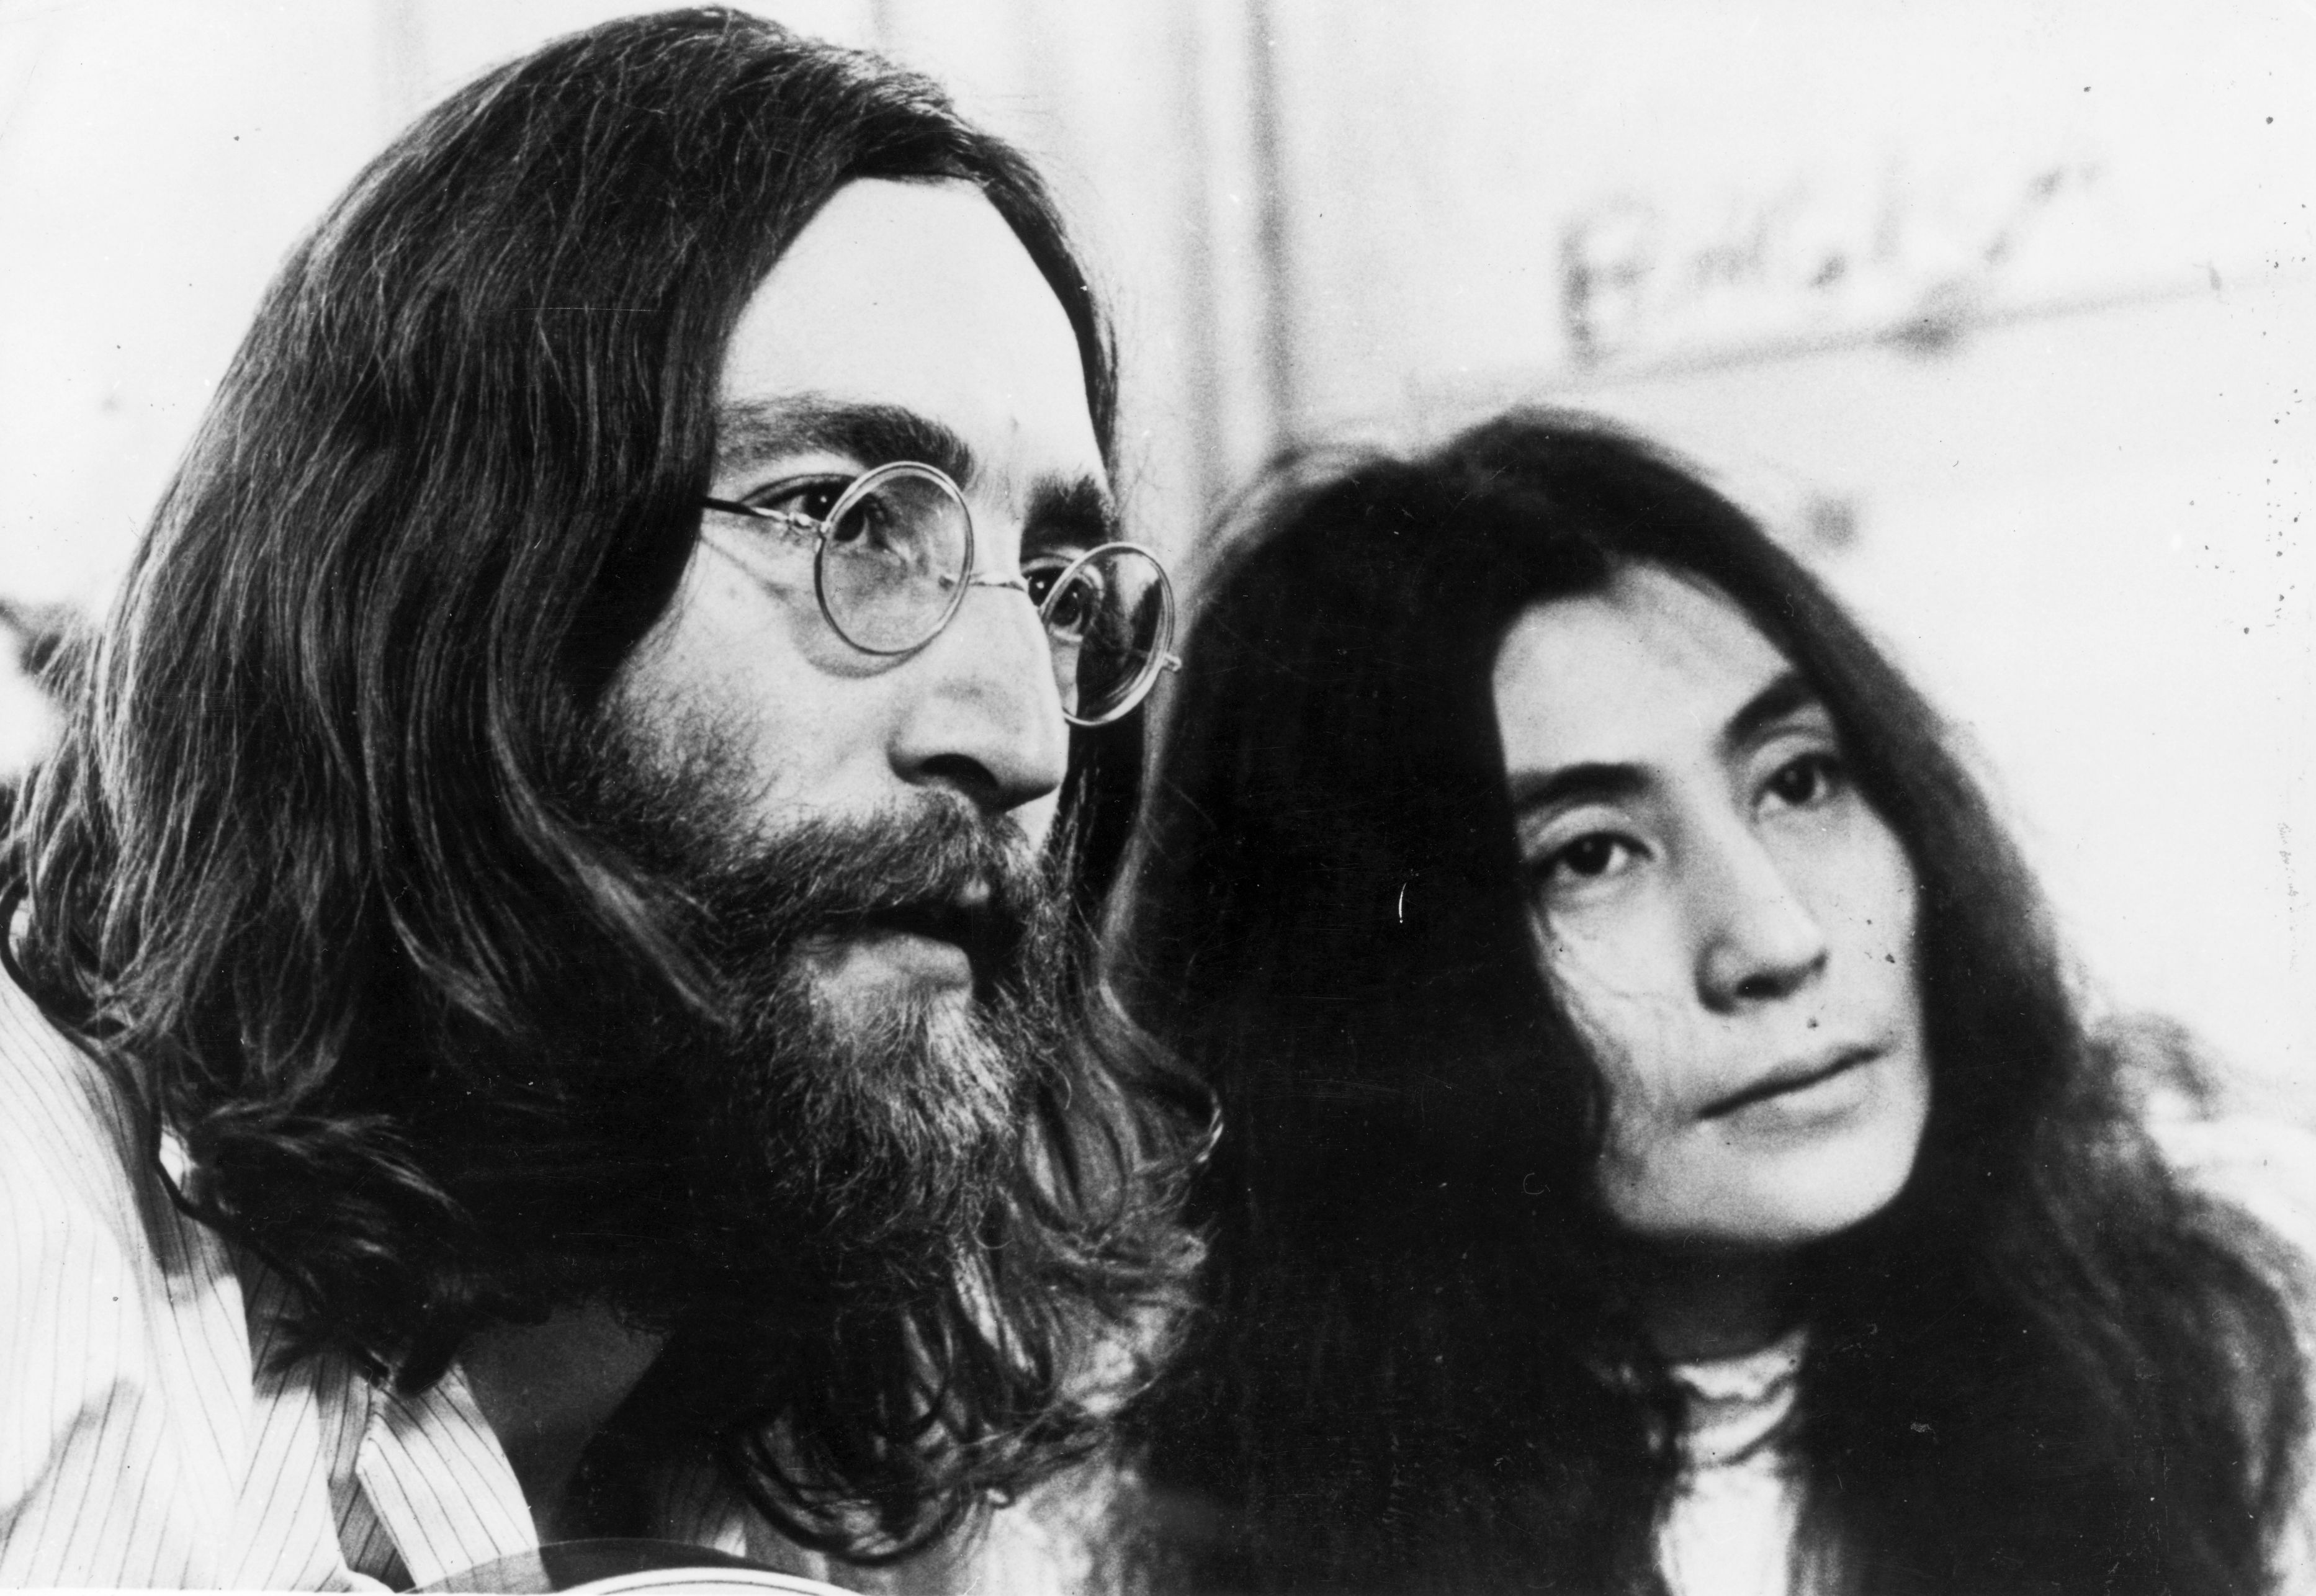 1969: John Lennon (1940 -1980), singer, songwriter and guitarist of British pop group The Beatles, with his wife Yoko Ono listening to the playback of one of their tapes. (Photo by Keystone Features/Getty Images)